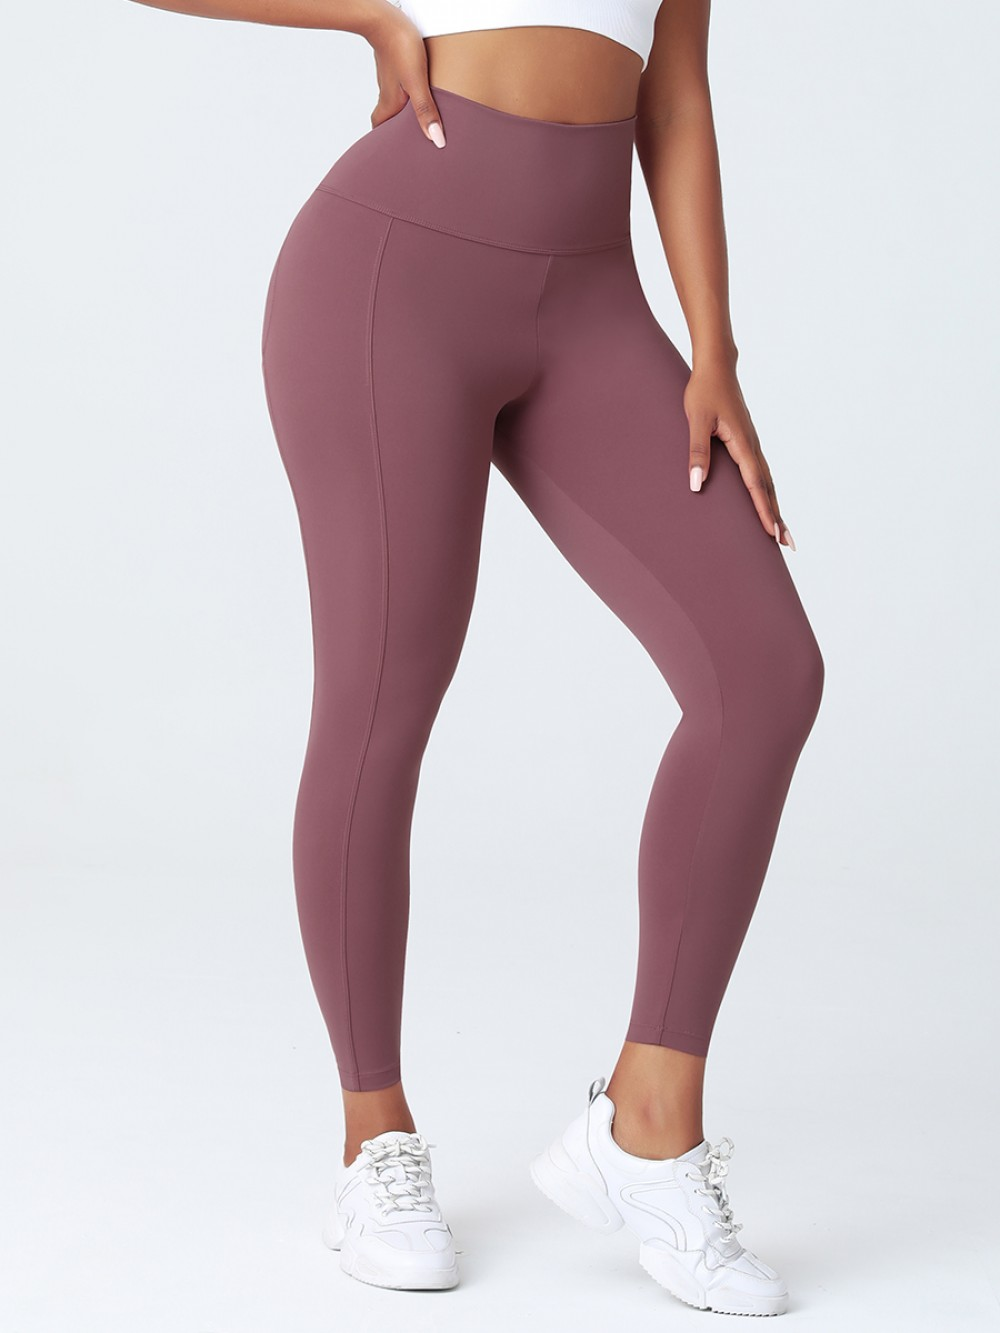 Jujube Red High Rise Contouring Stitch Lines Sports Pant Form Fit